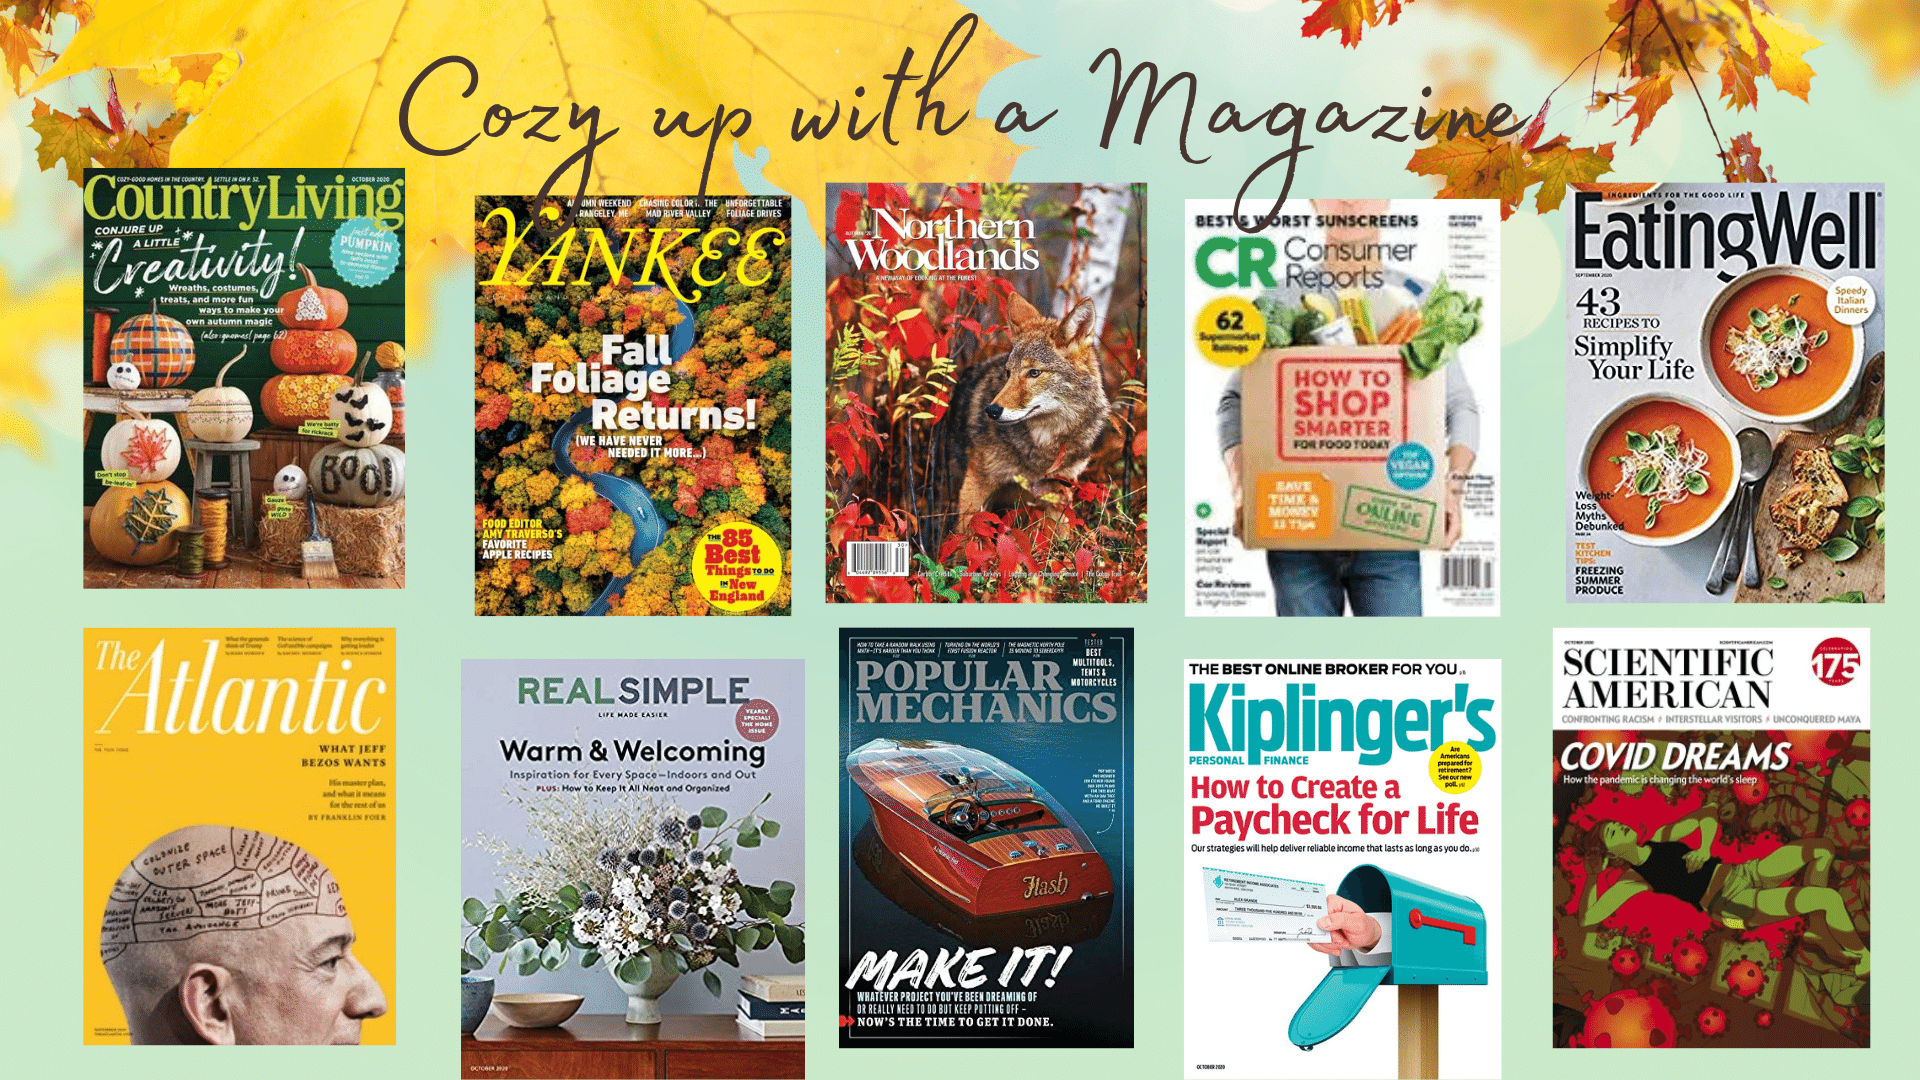 cozy up with a magazine booklist